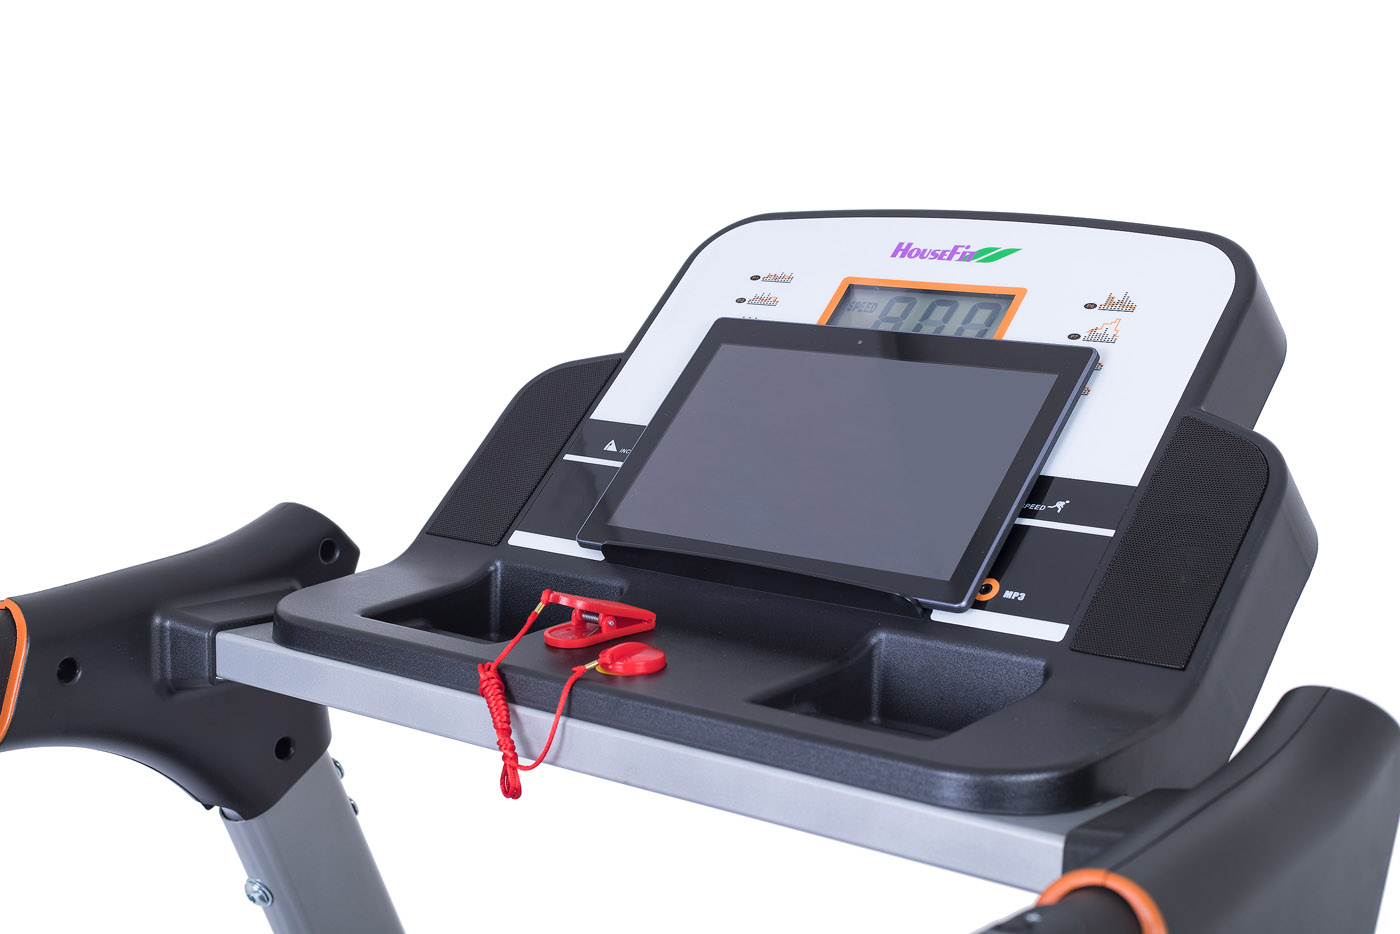 HouseFit Tempo 20 tablet